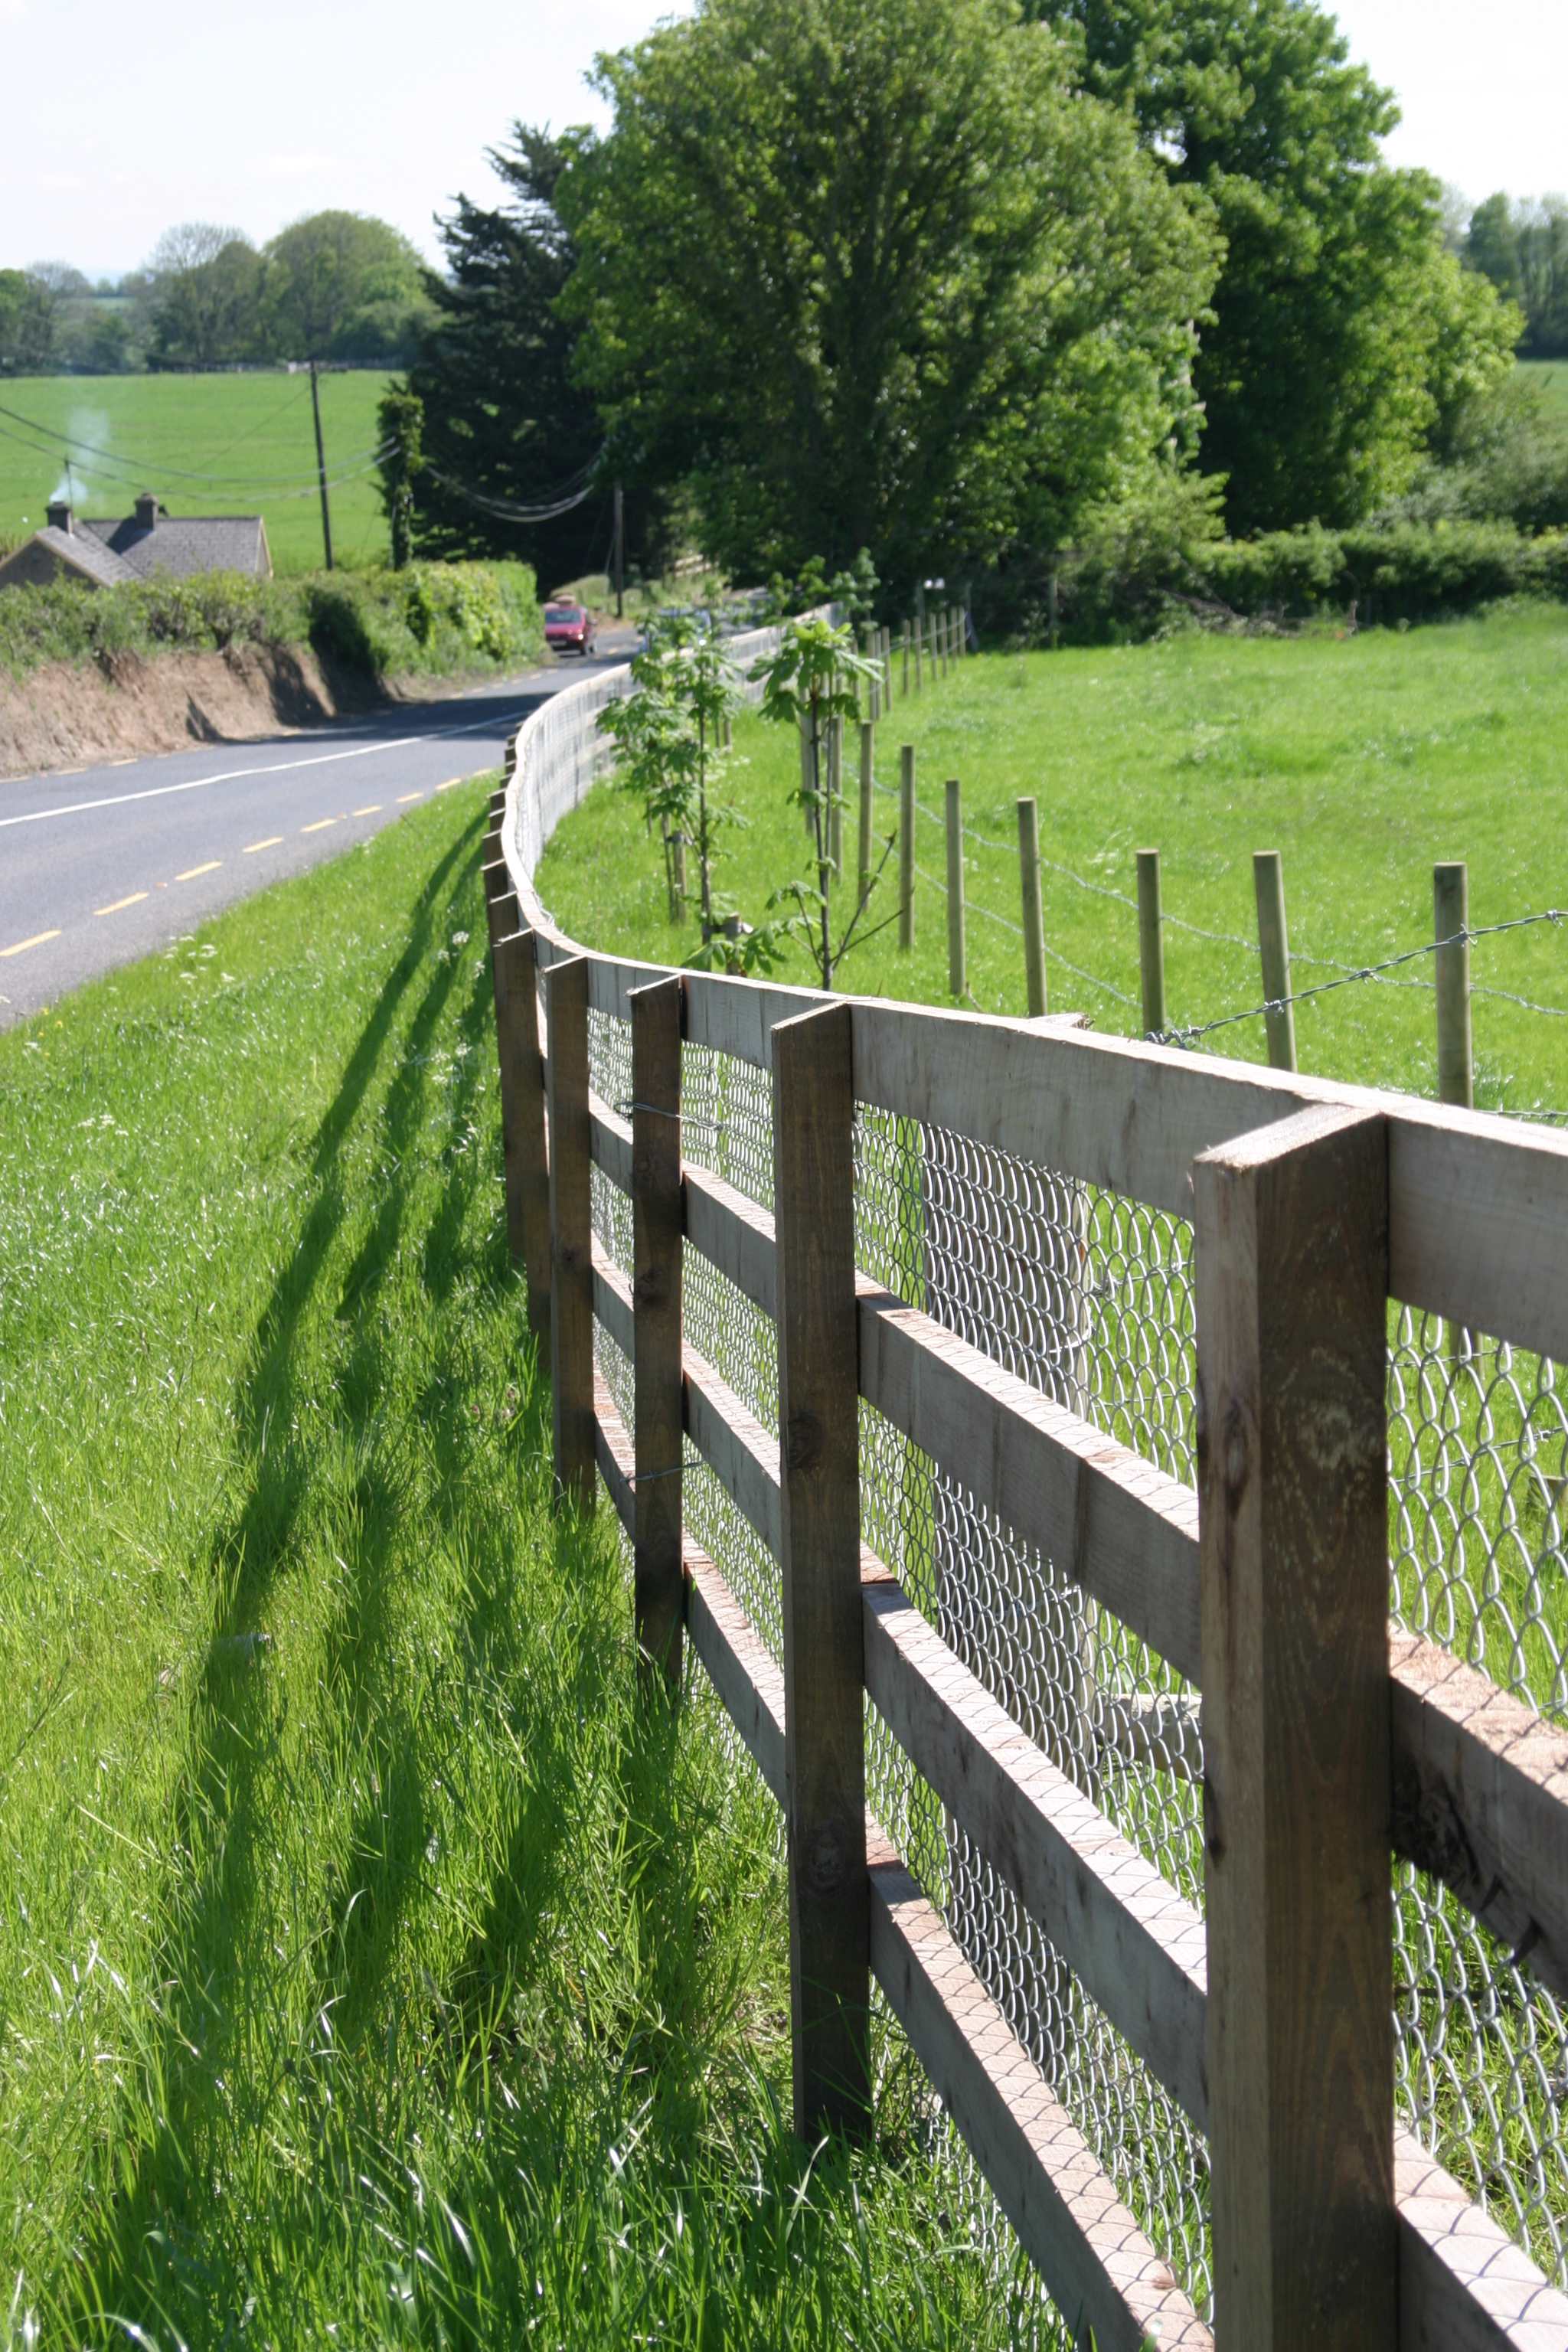 Article: Top ten Tips for Preparing the paddocks and making the most out of early grass in spring